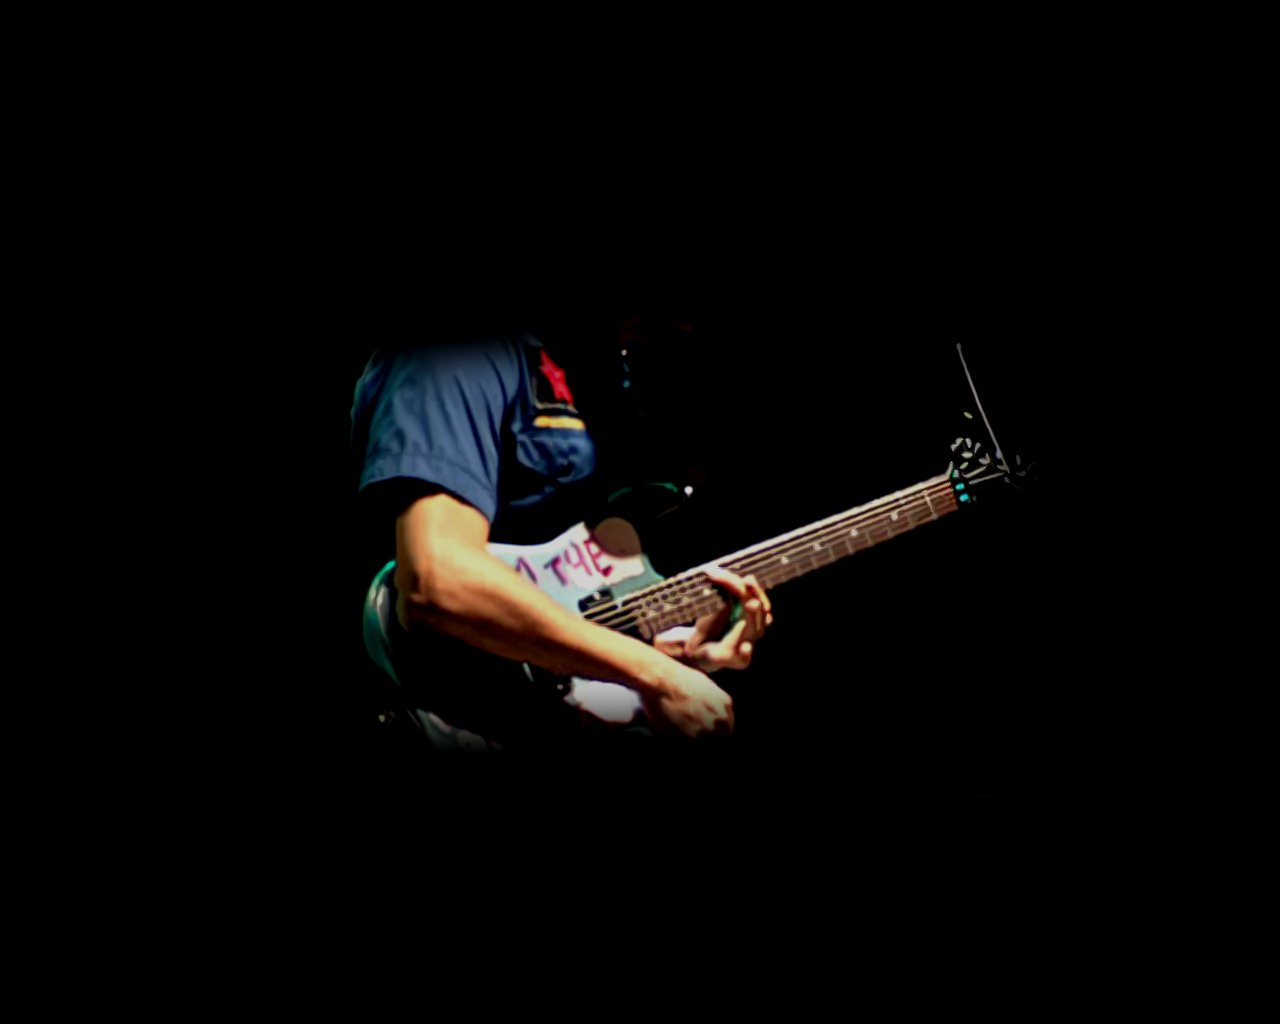 Tom Morello and ATH guitar 3 by wafel r 1280x1024